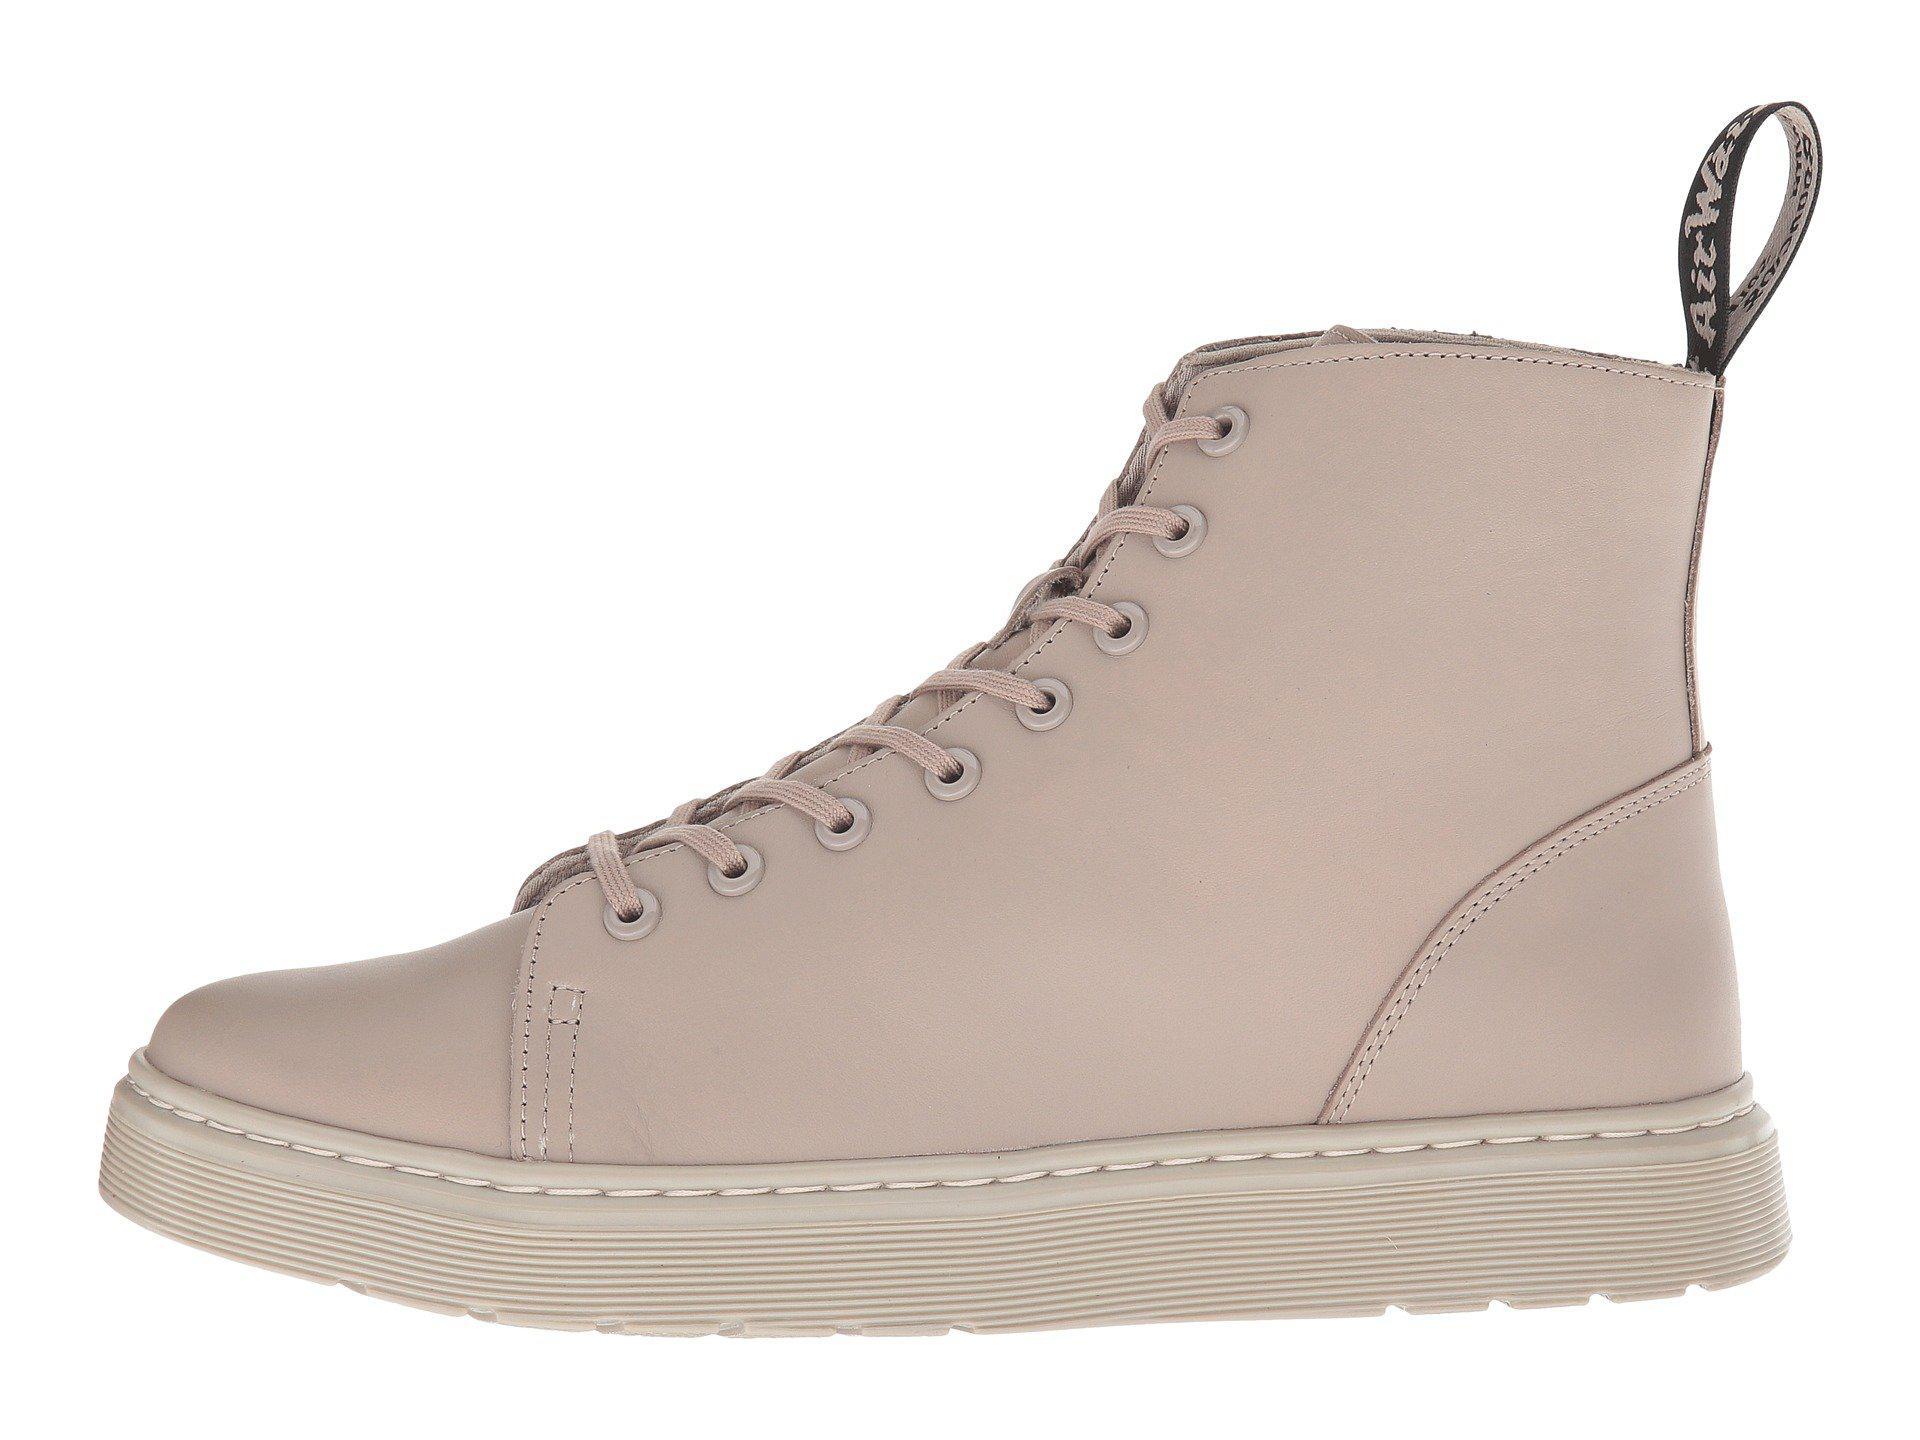 Ruined lonely Equipment  Dr. Martens Leather Talib Sendal (taupe Sendal) Men's Boots in Brown for  Men - Lyst